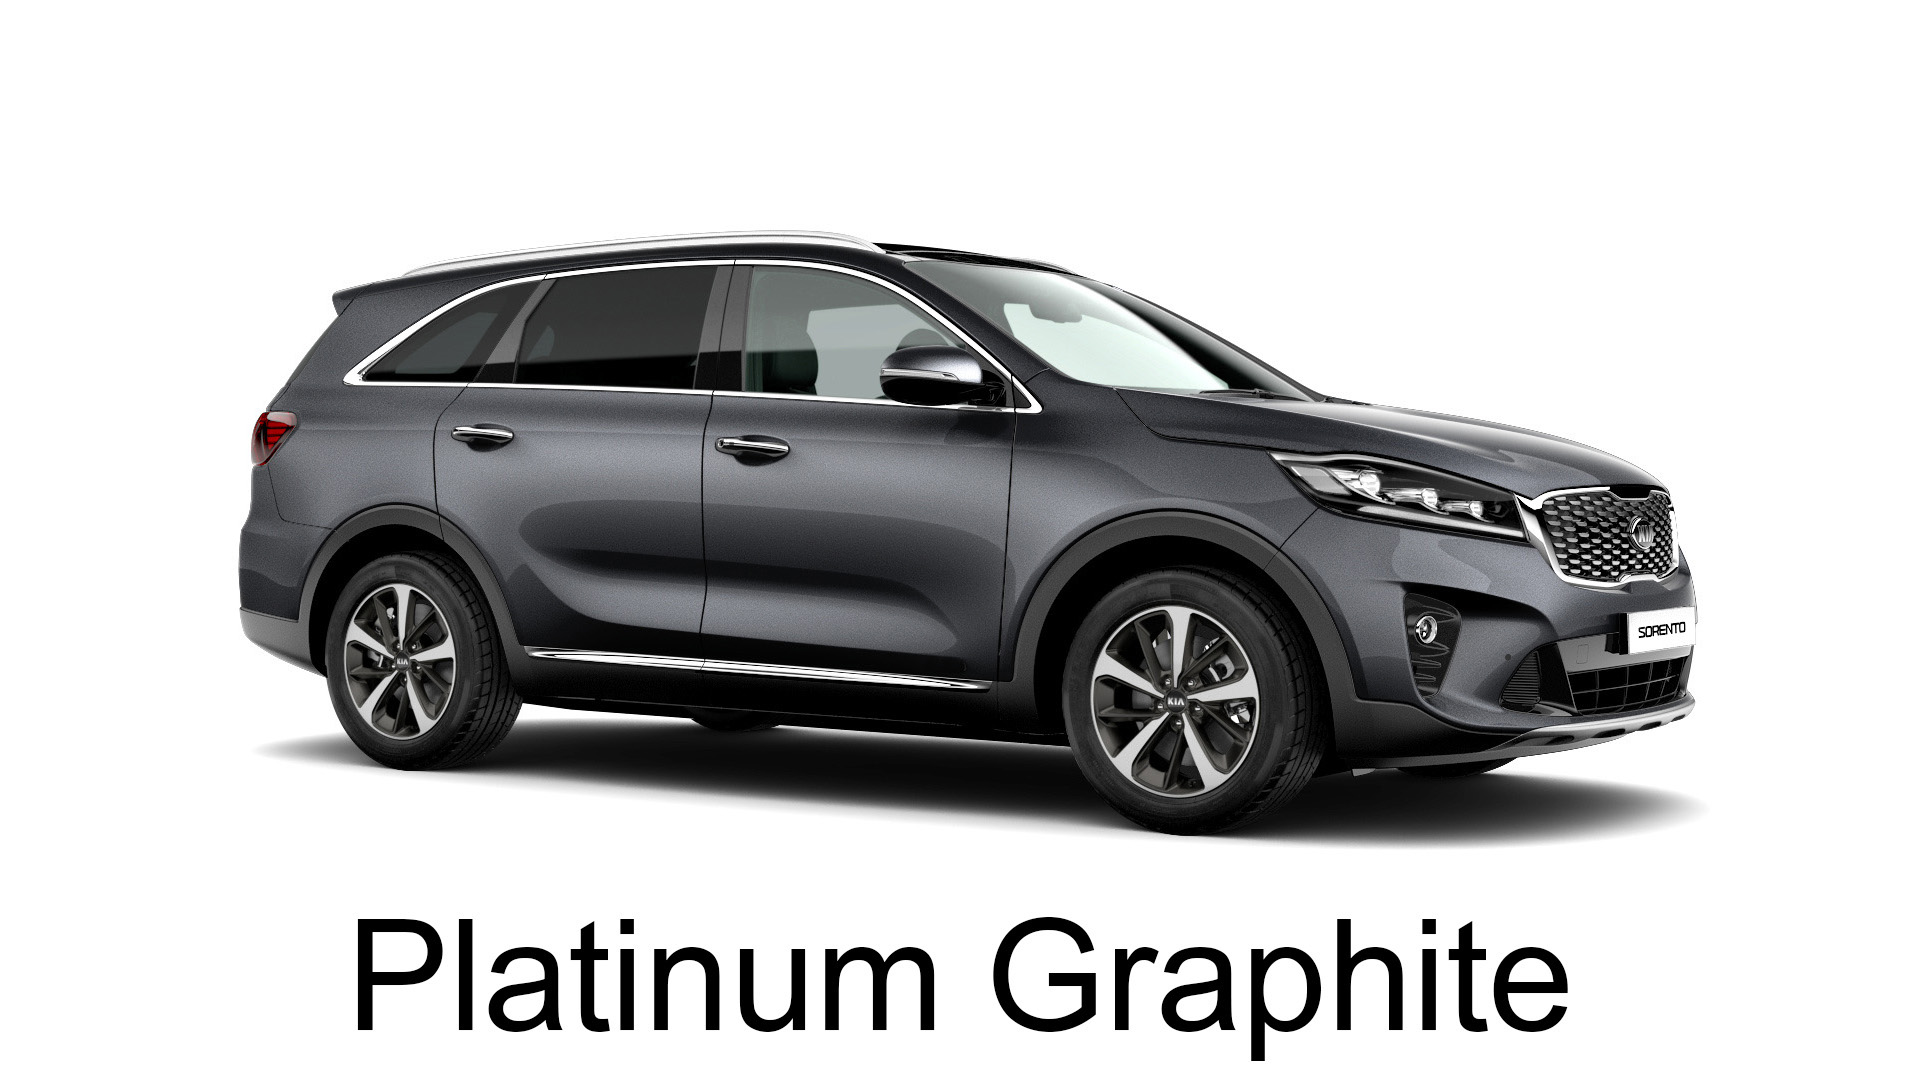 Platinum Graphite